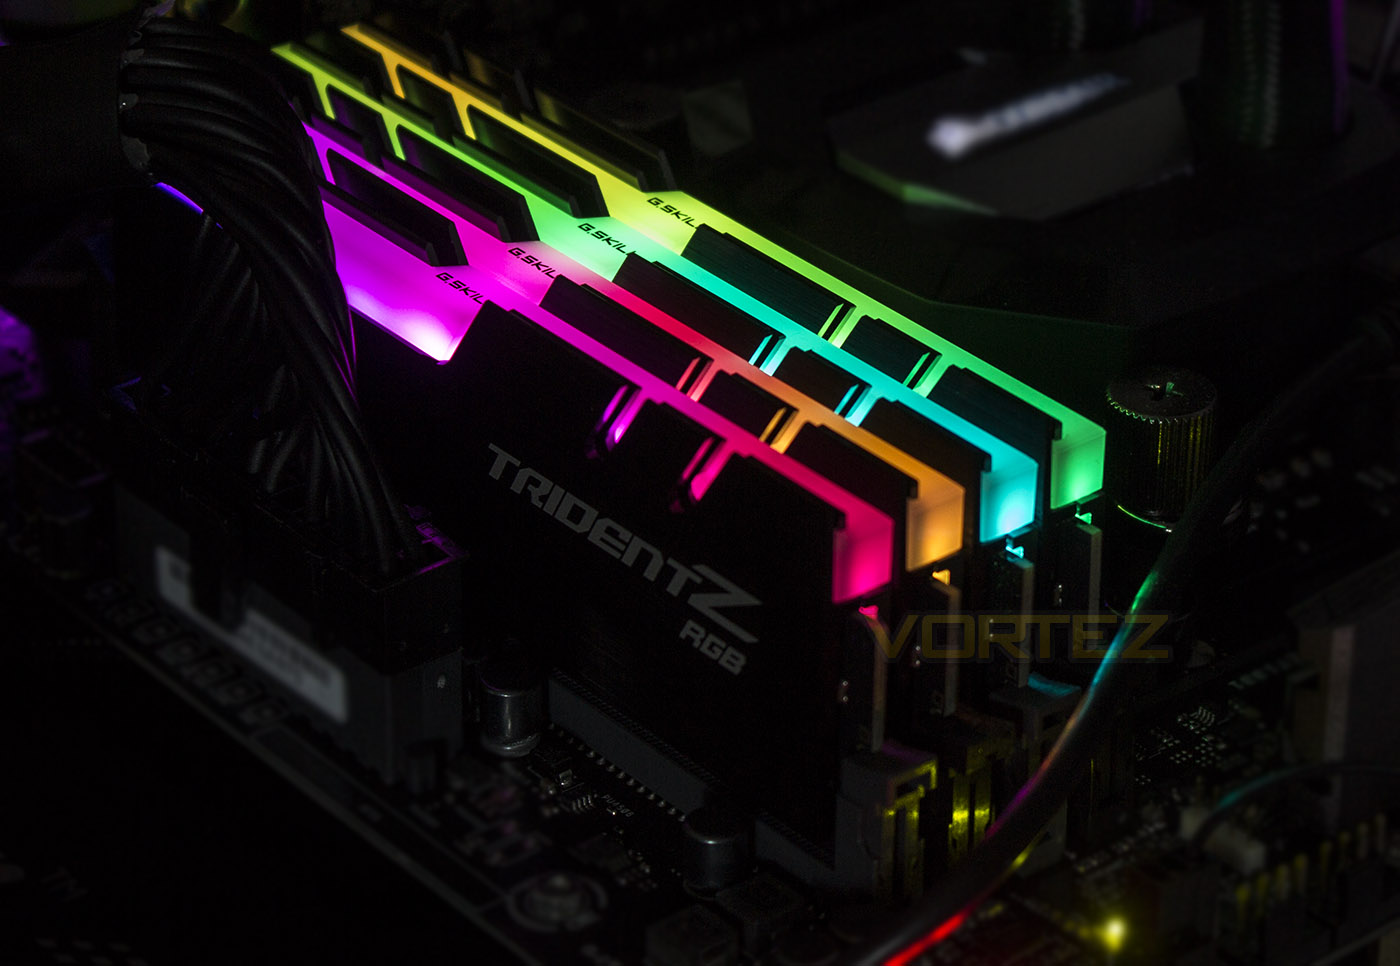 g_skill_trident_z_rgb_lighting.jpg